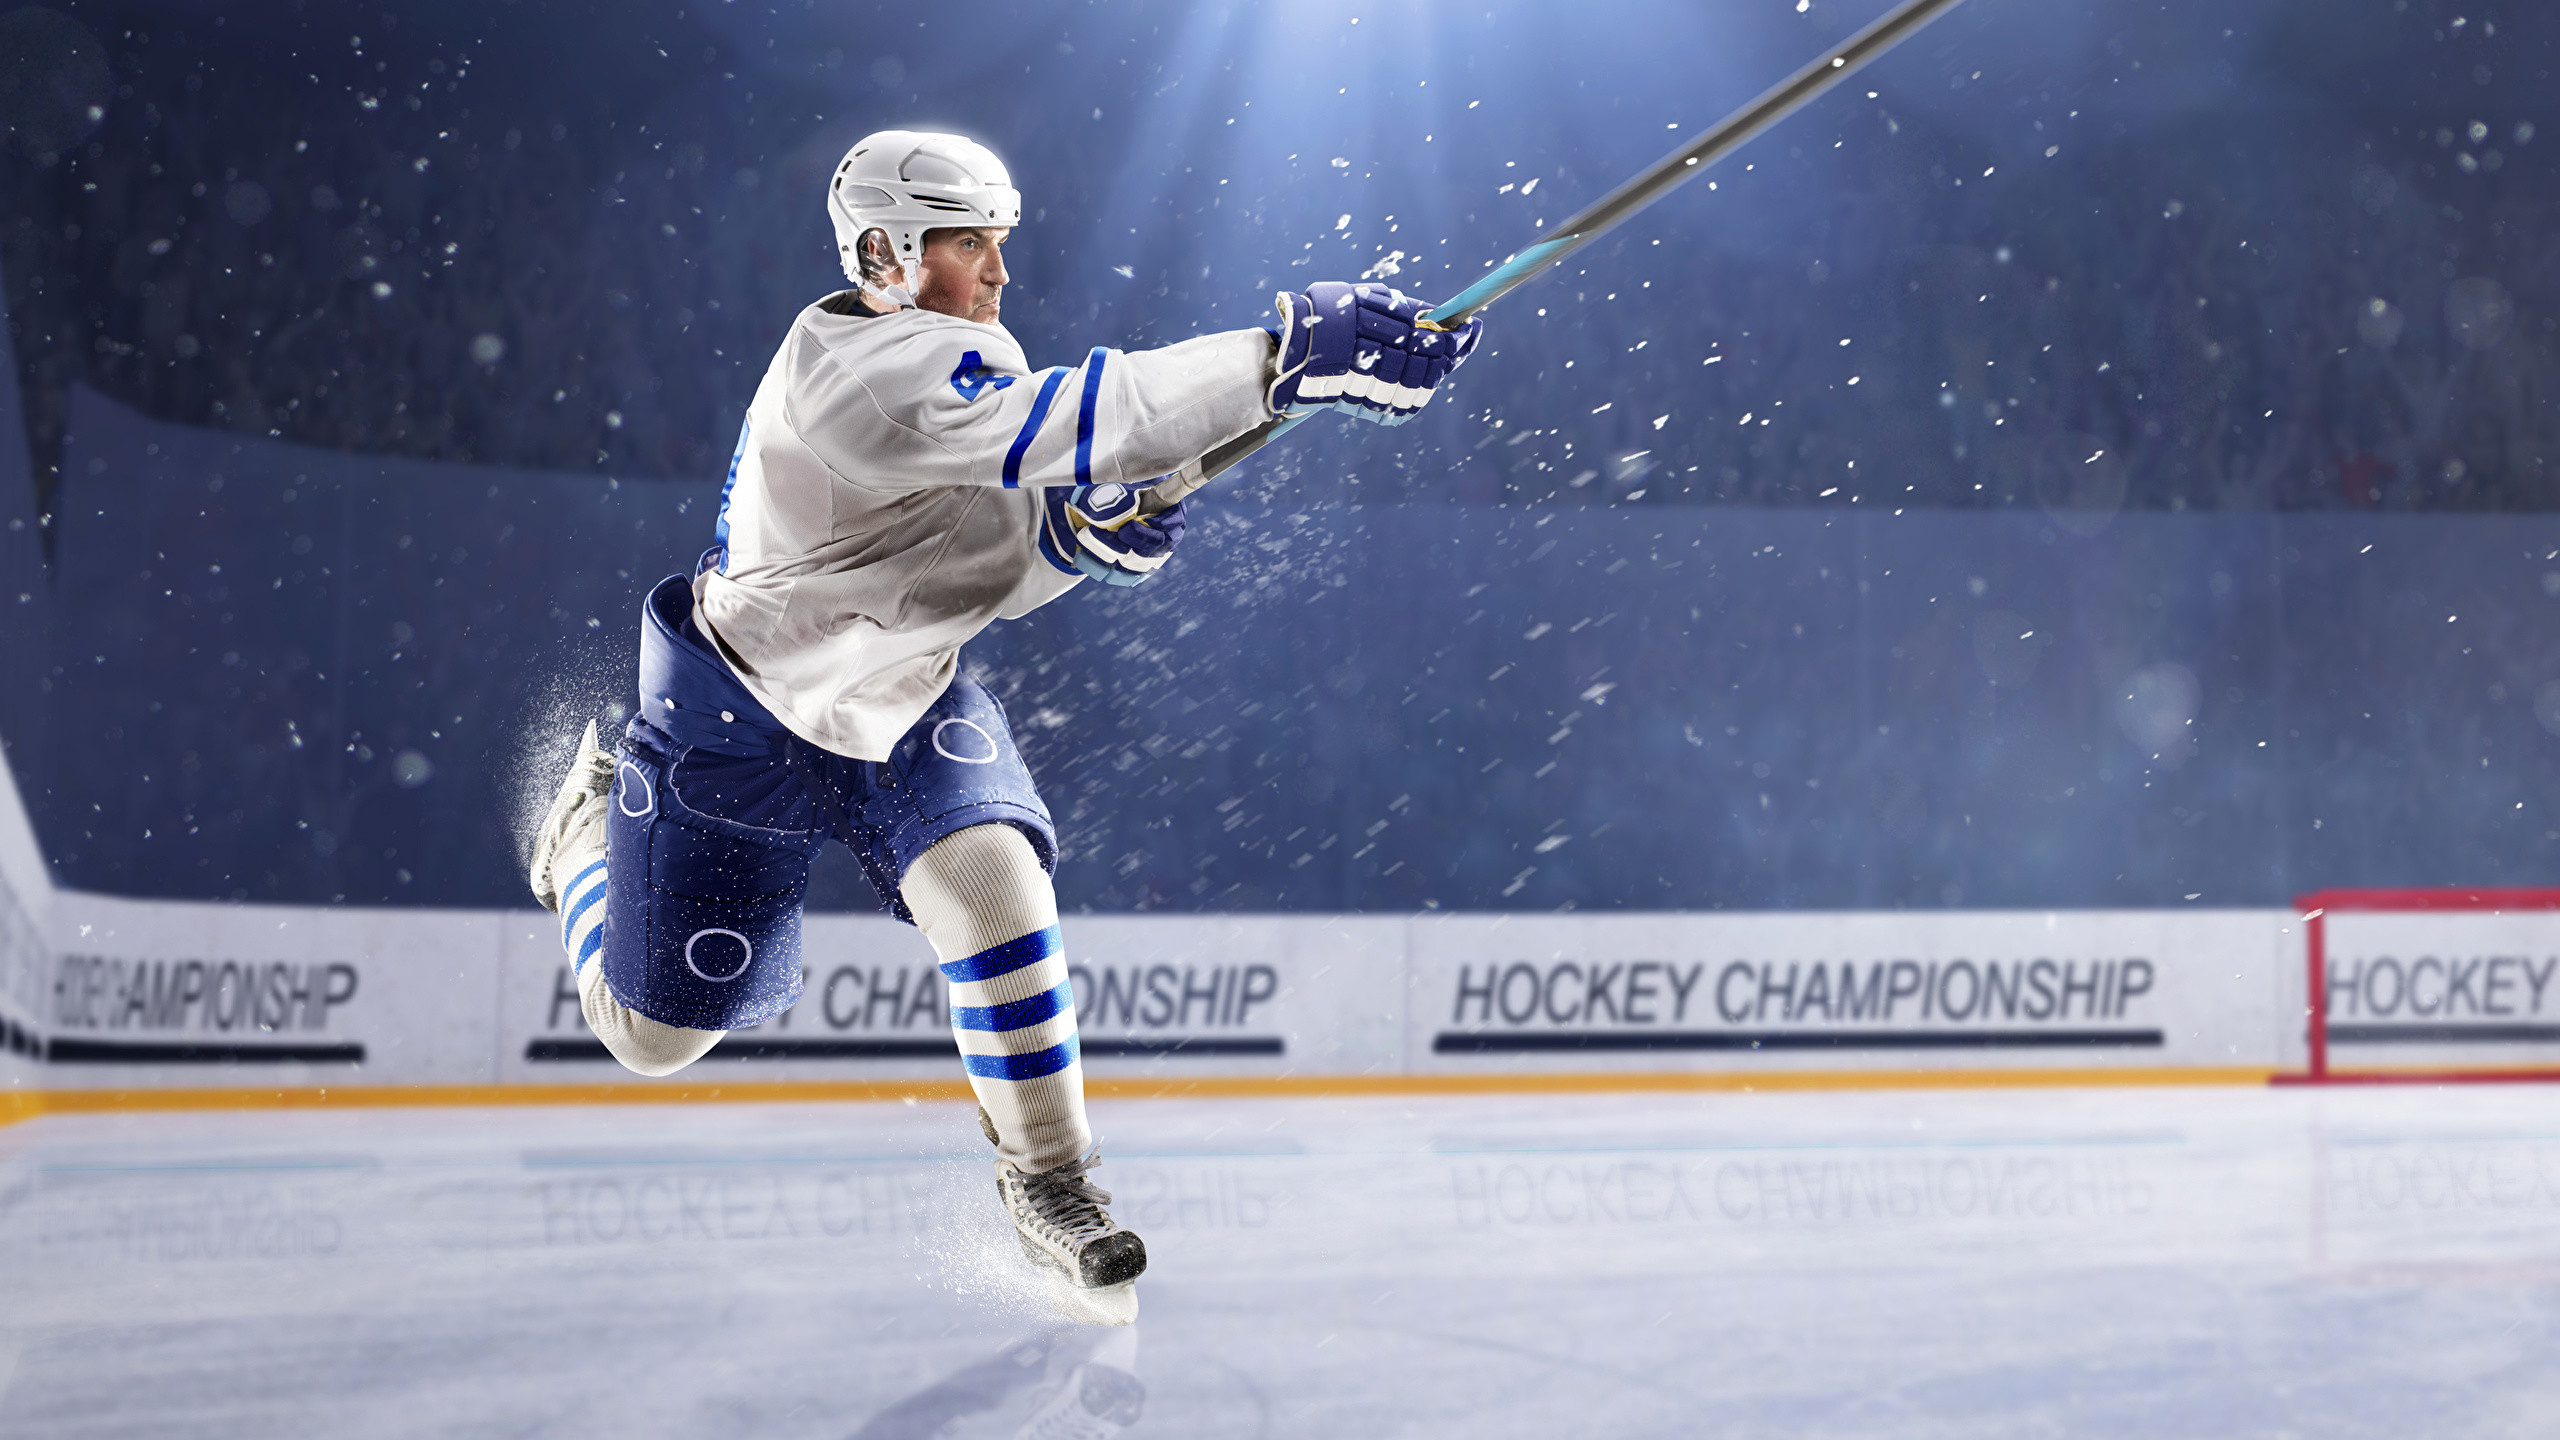 St Louis Blues Iphone Wallpaper Ice Hockey Wallpaper 74 Images